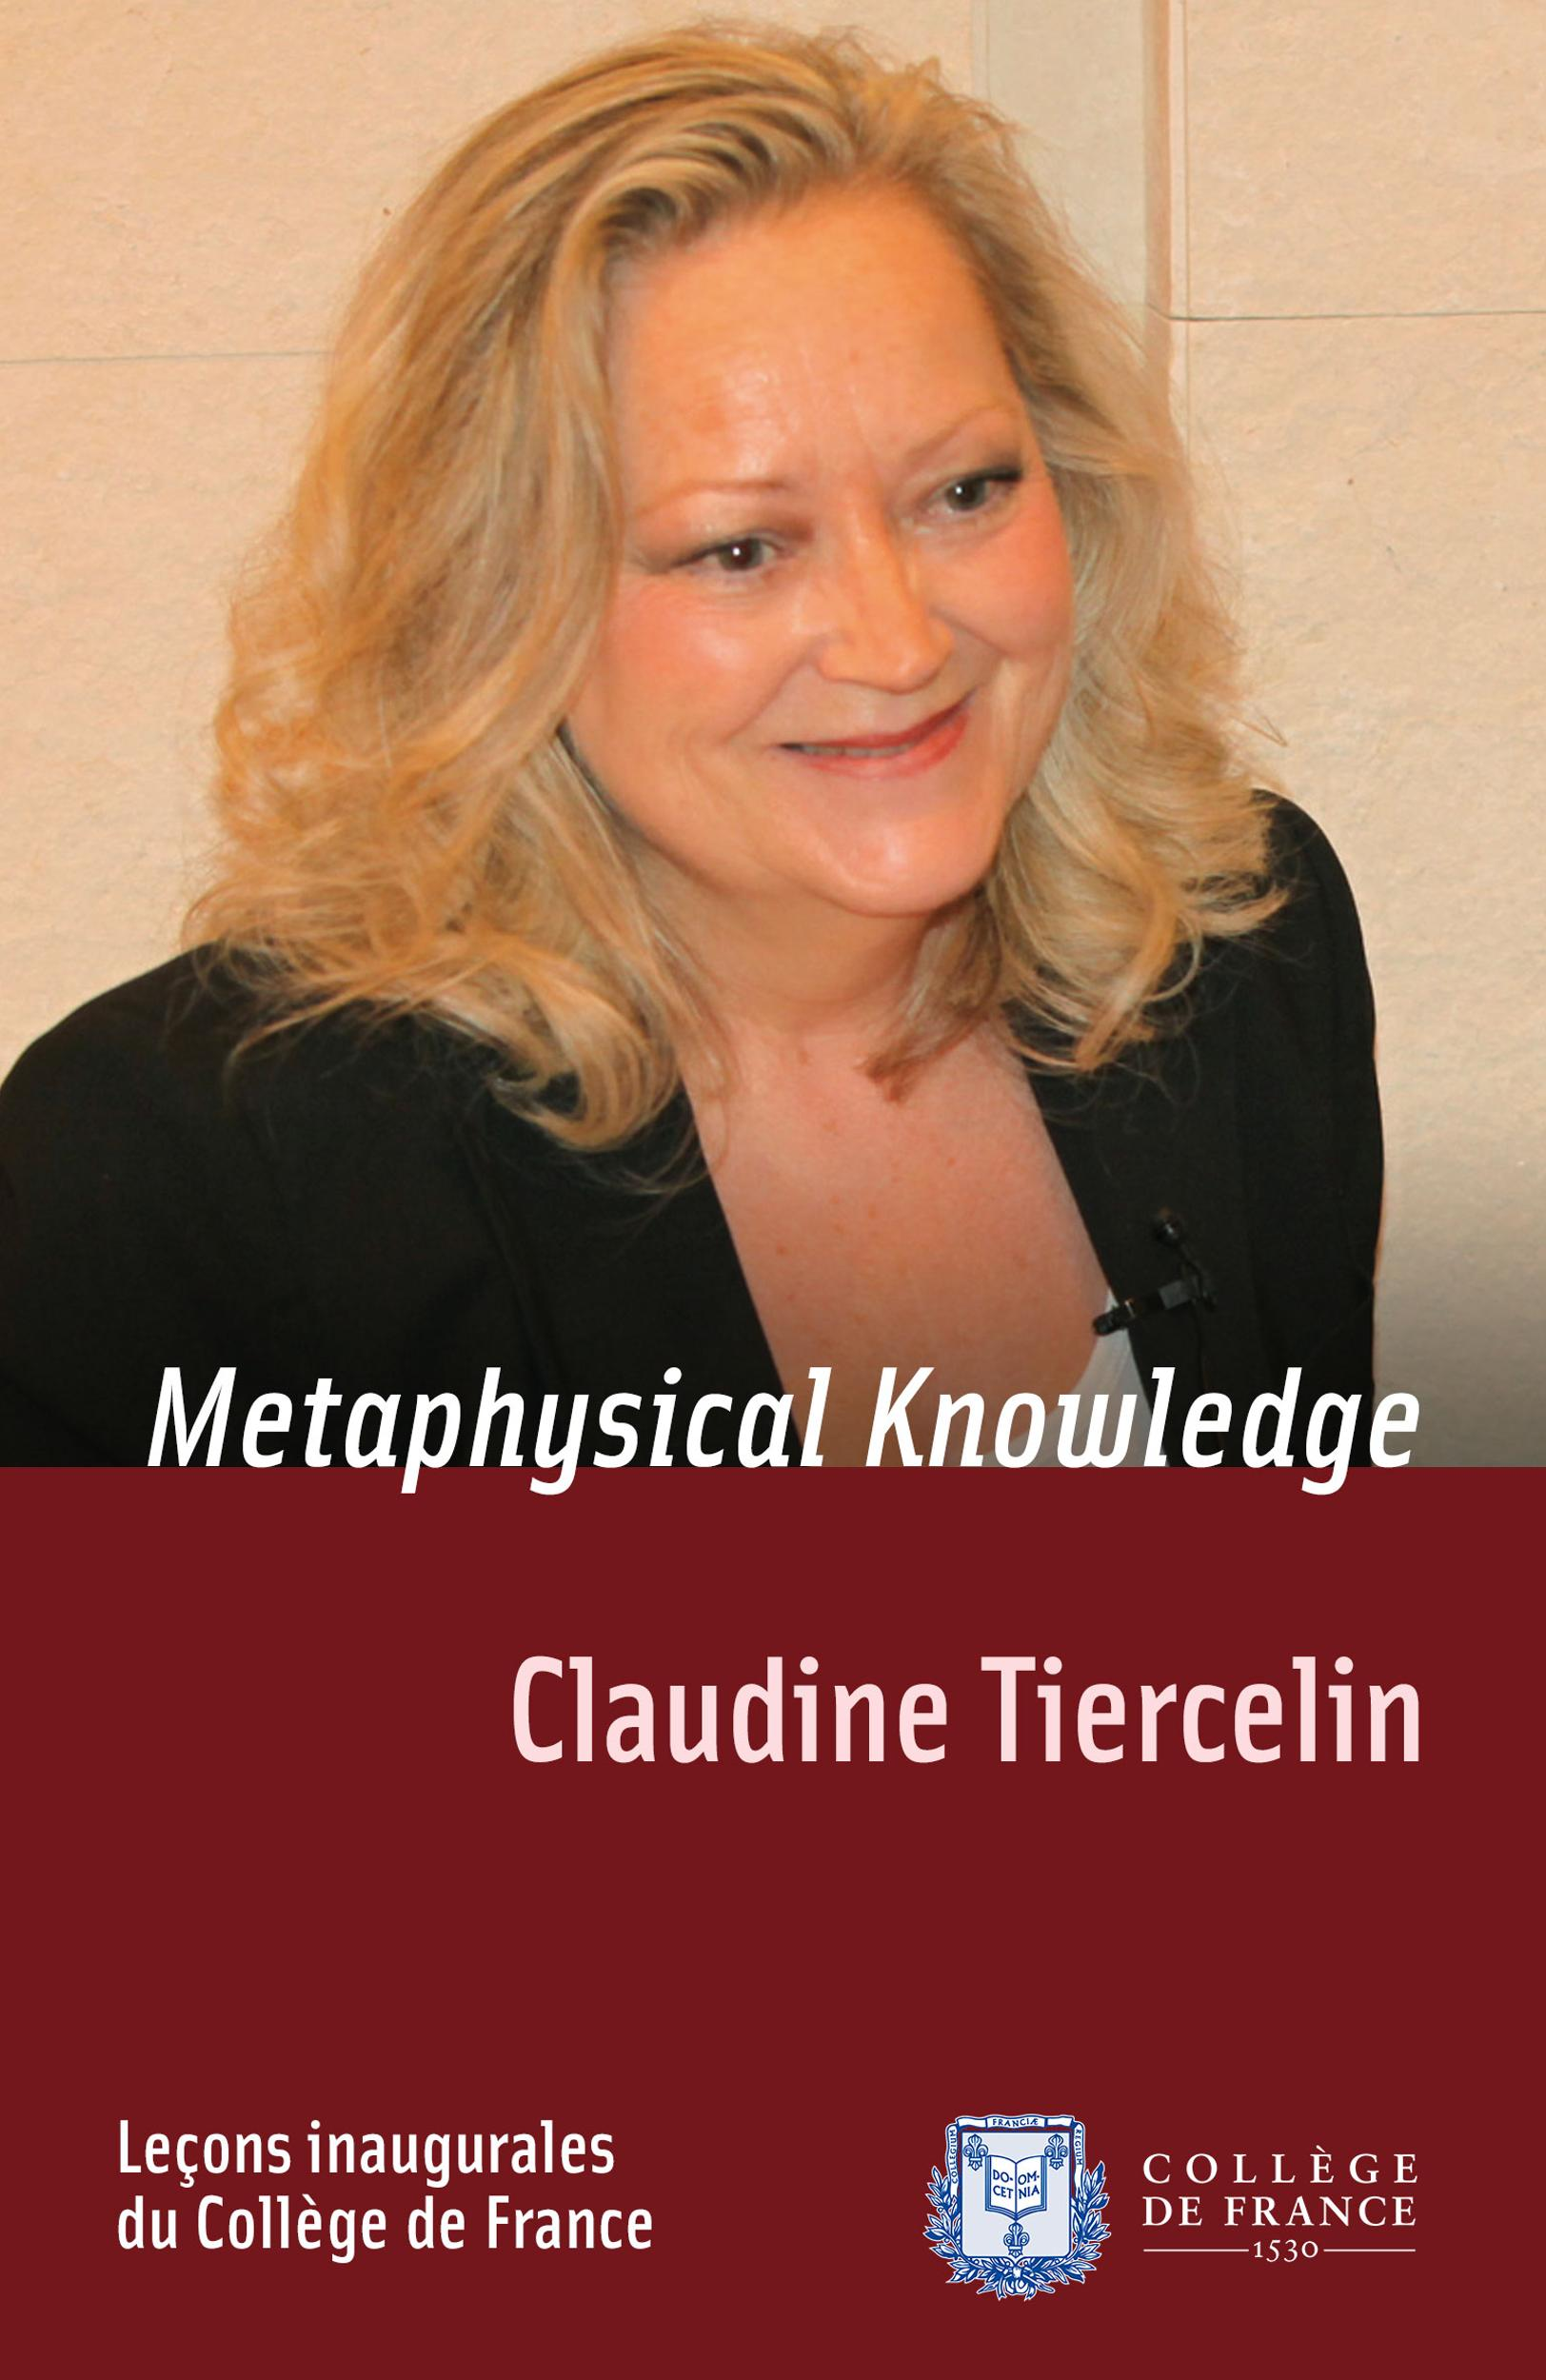 Metaphysical Knowledge, INAUGURAL LECTURE DELIVERED ON THURSDAY 5 MAY 2011